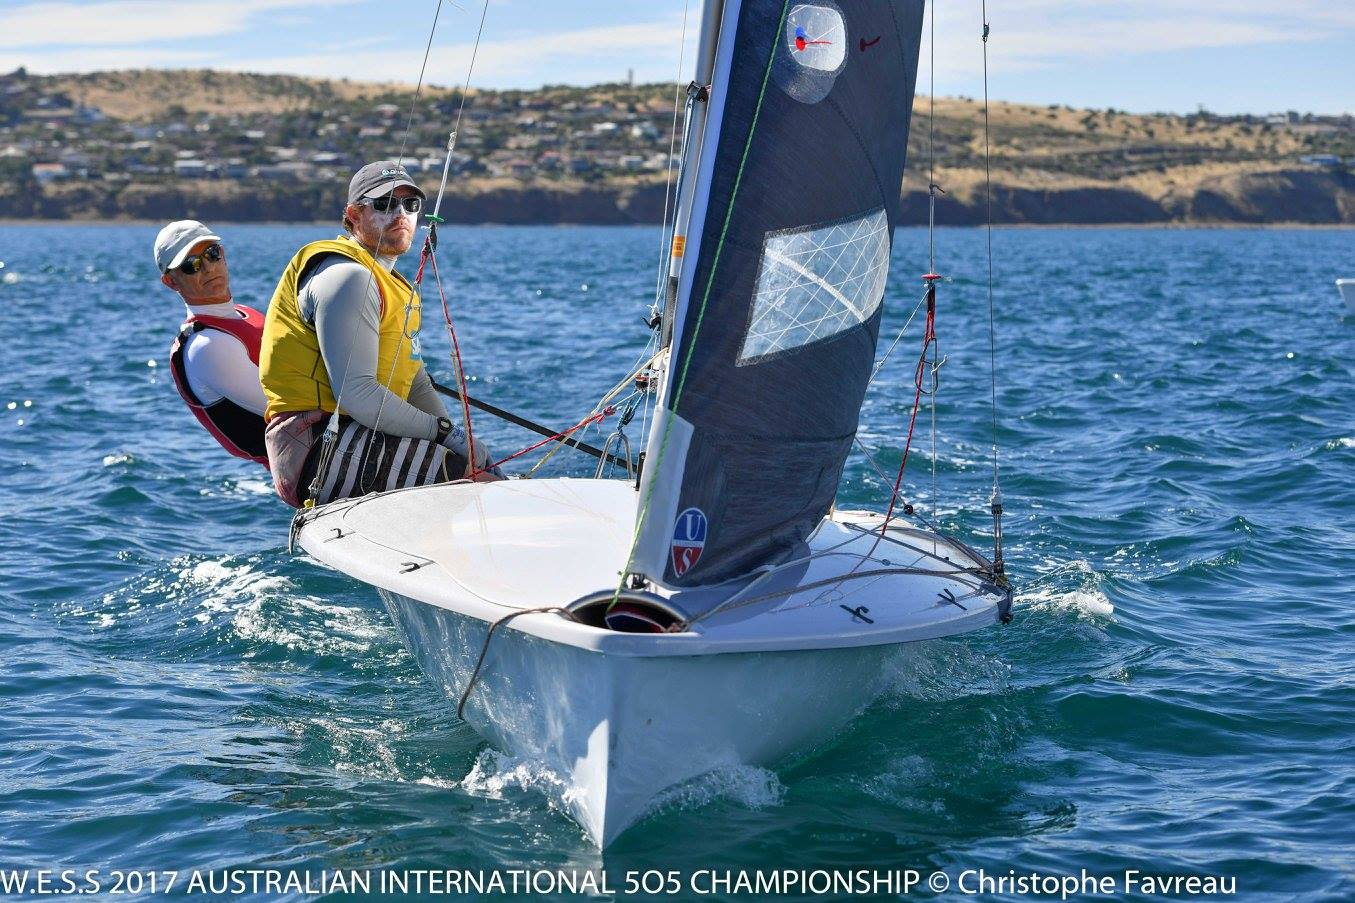 Michael Quirk and Reeve Dunne finished second in the opening race. Photos: Christophe Favreau